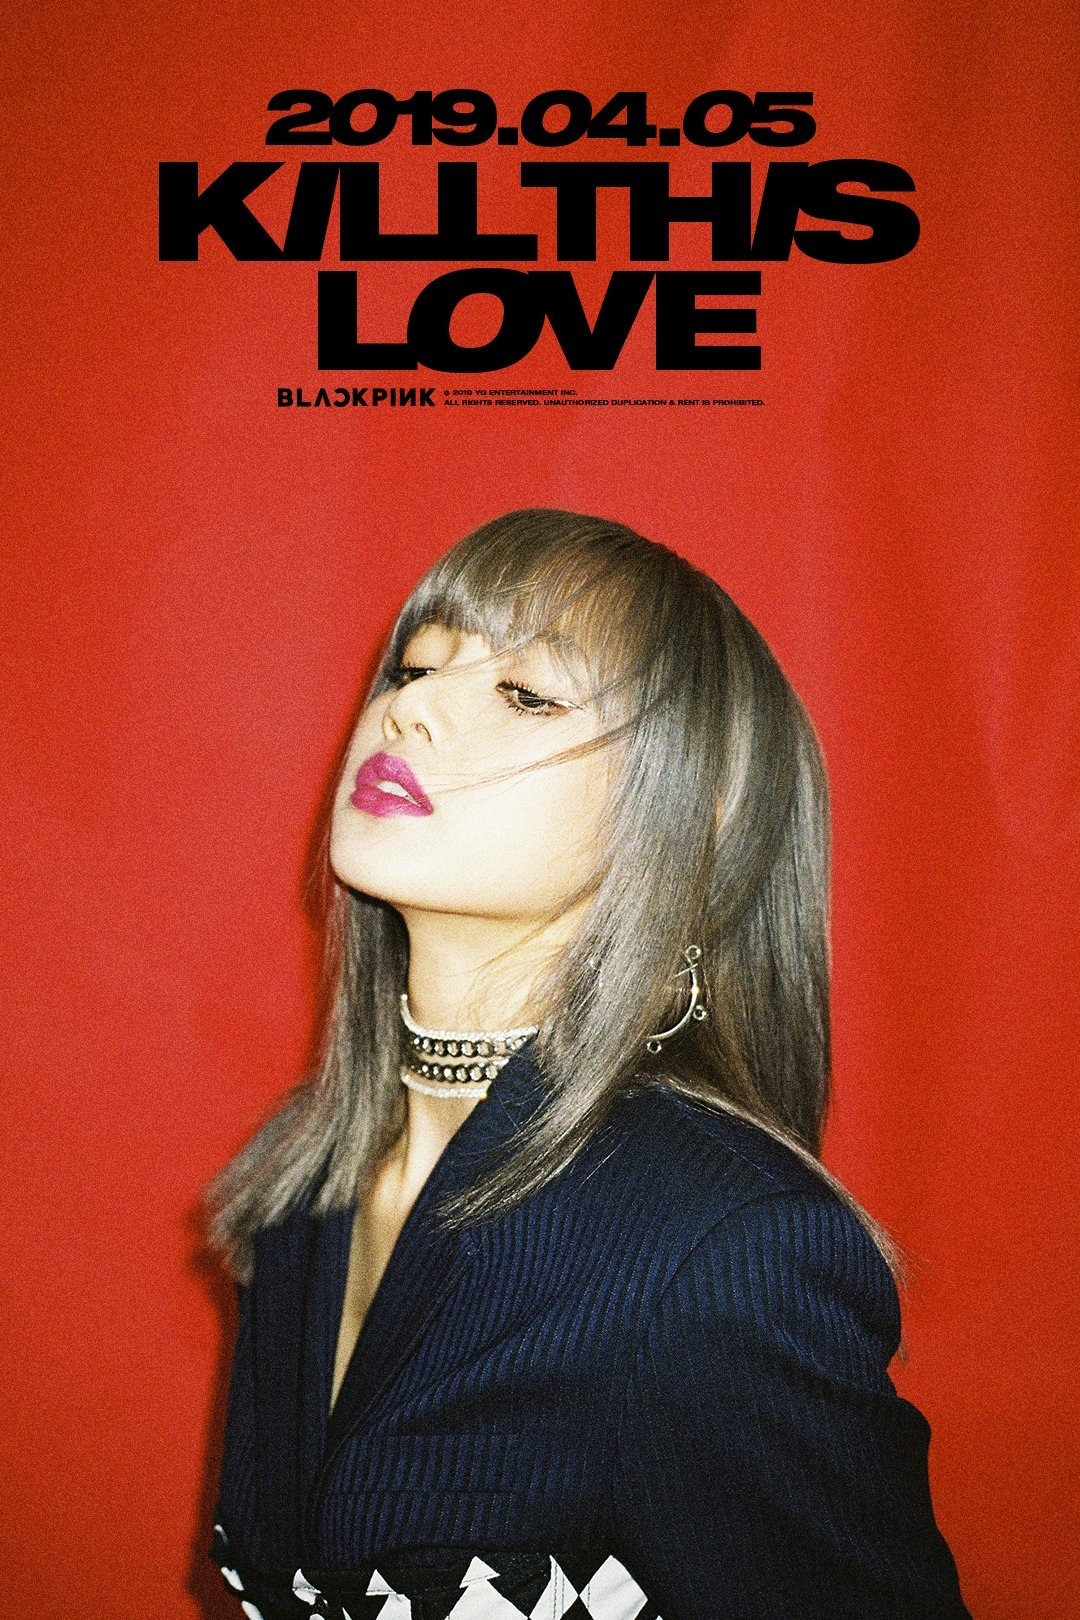 Lisa kill this love